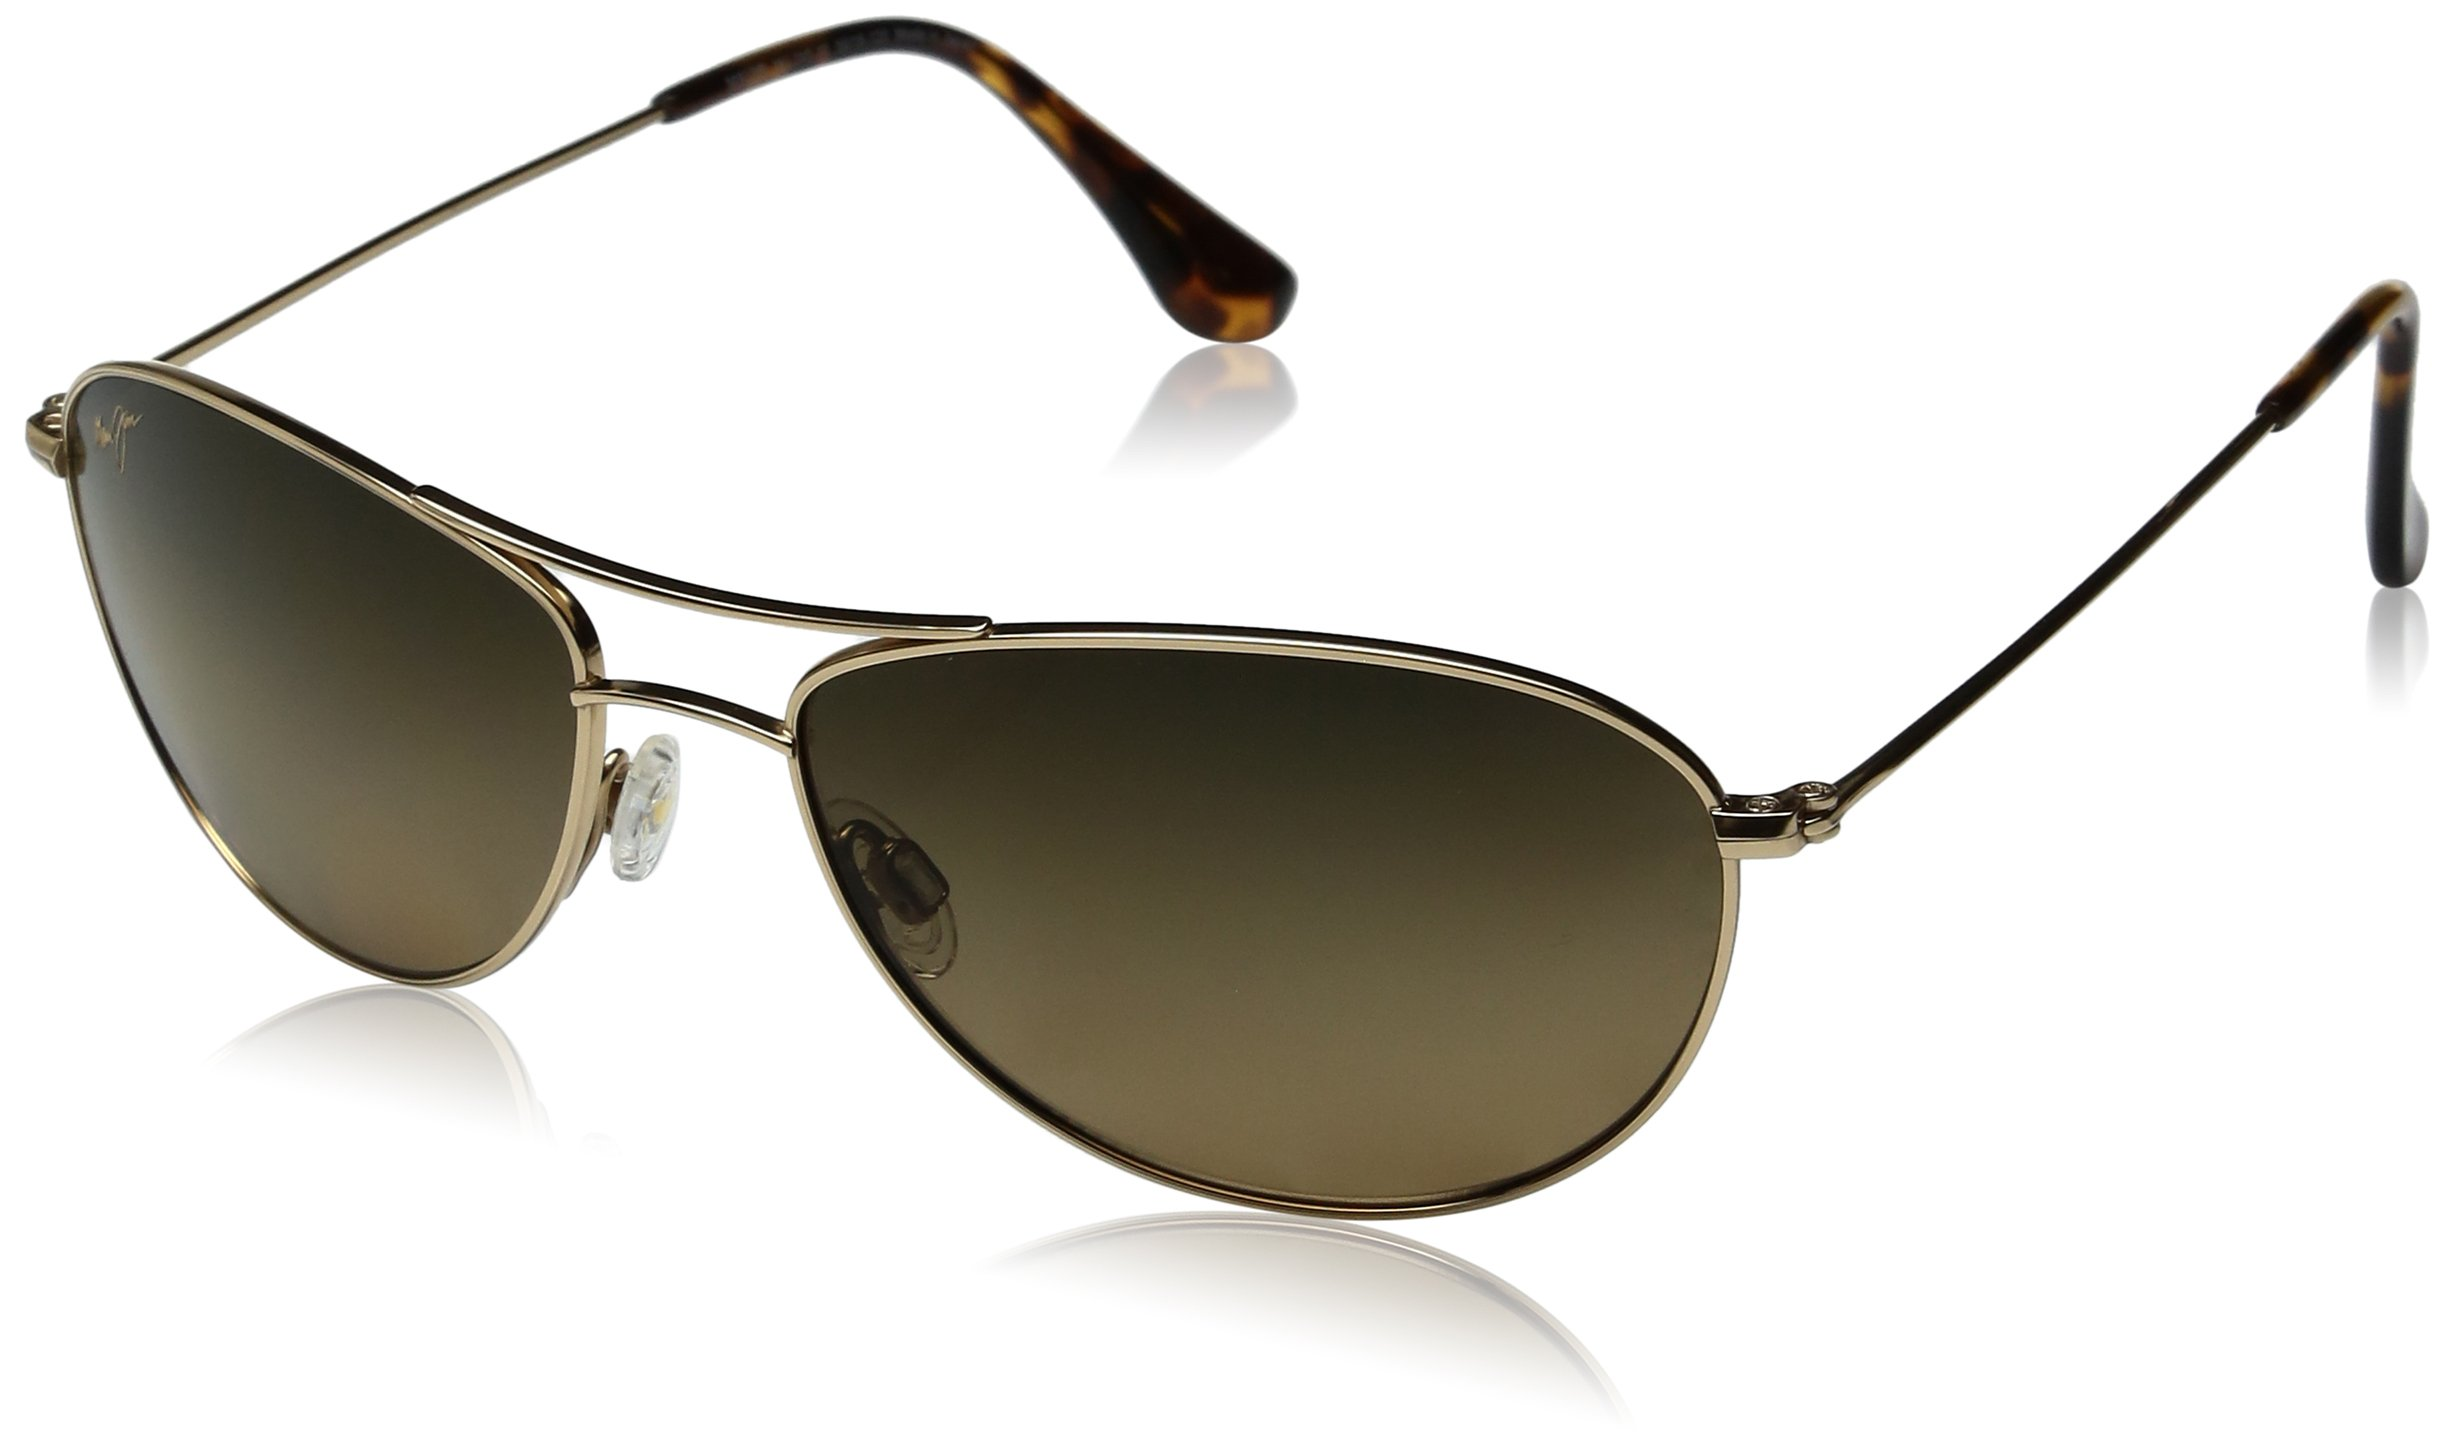 Maui Jim Baby Beach  Aviator Sunglasses, Gold Frame/HCL Bronze Lens, One Size by Maui Jim